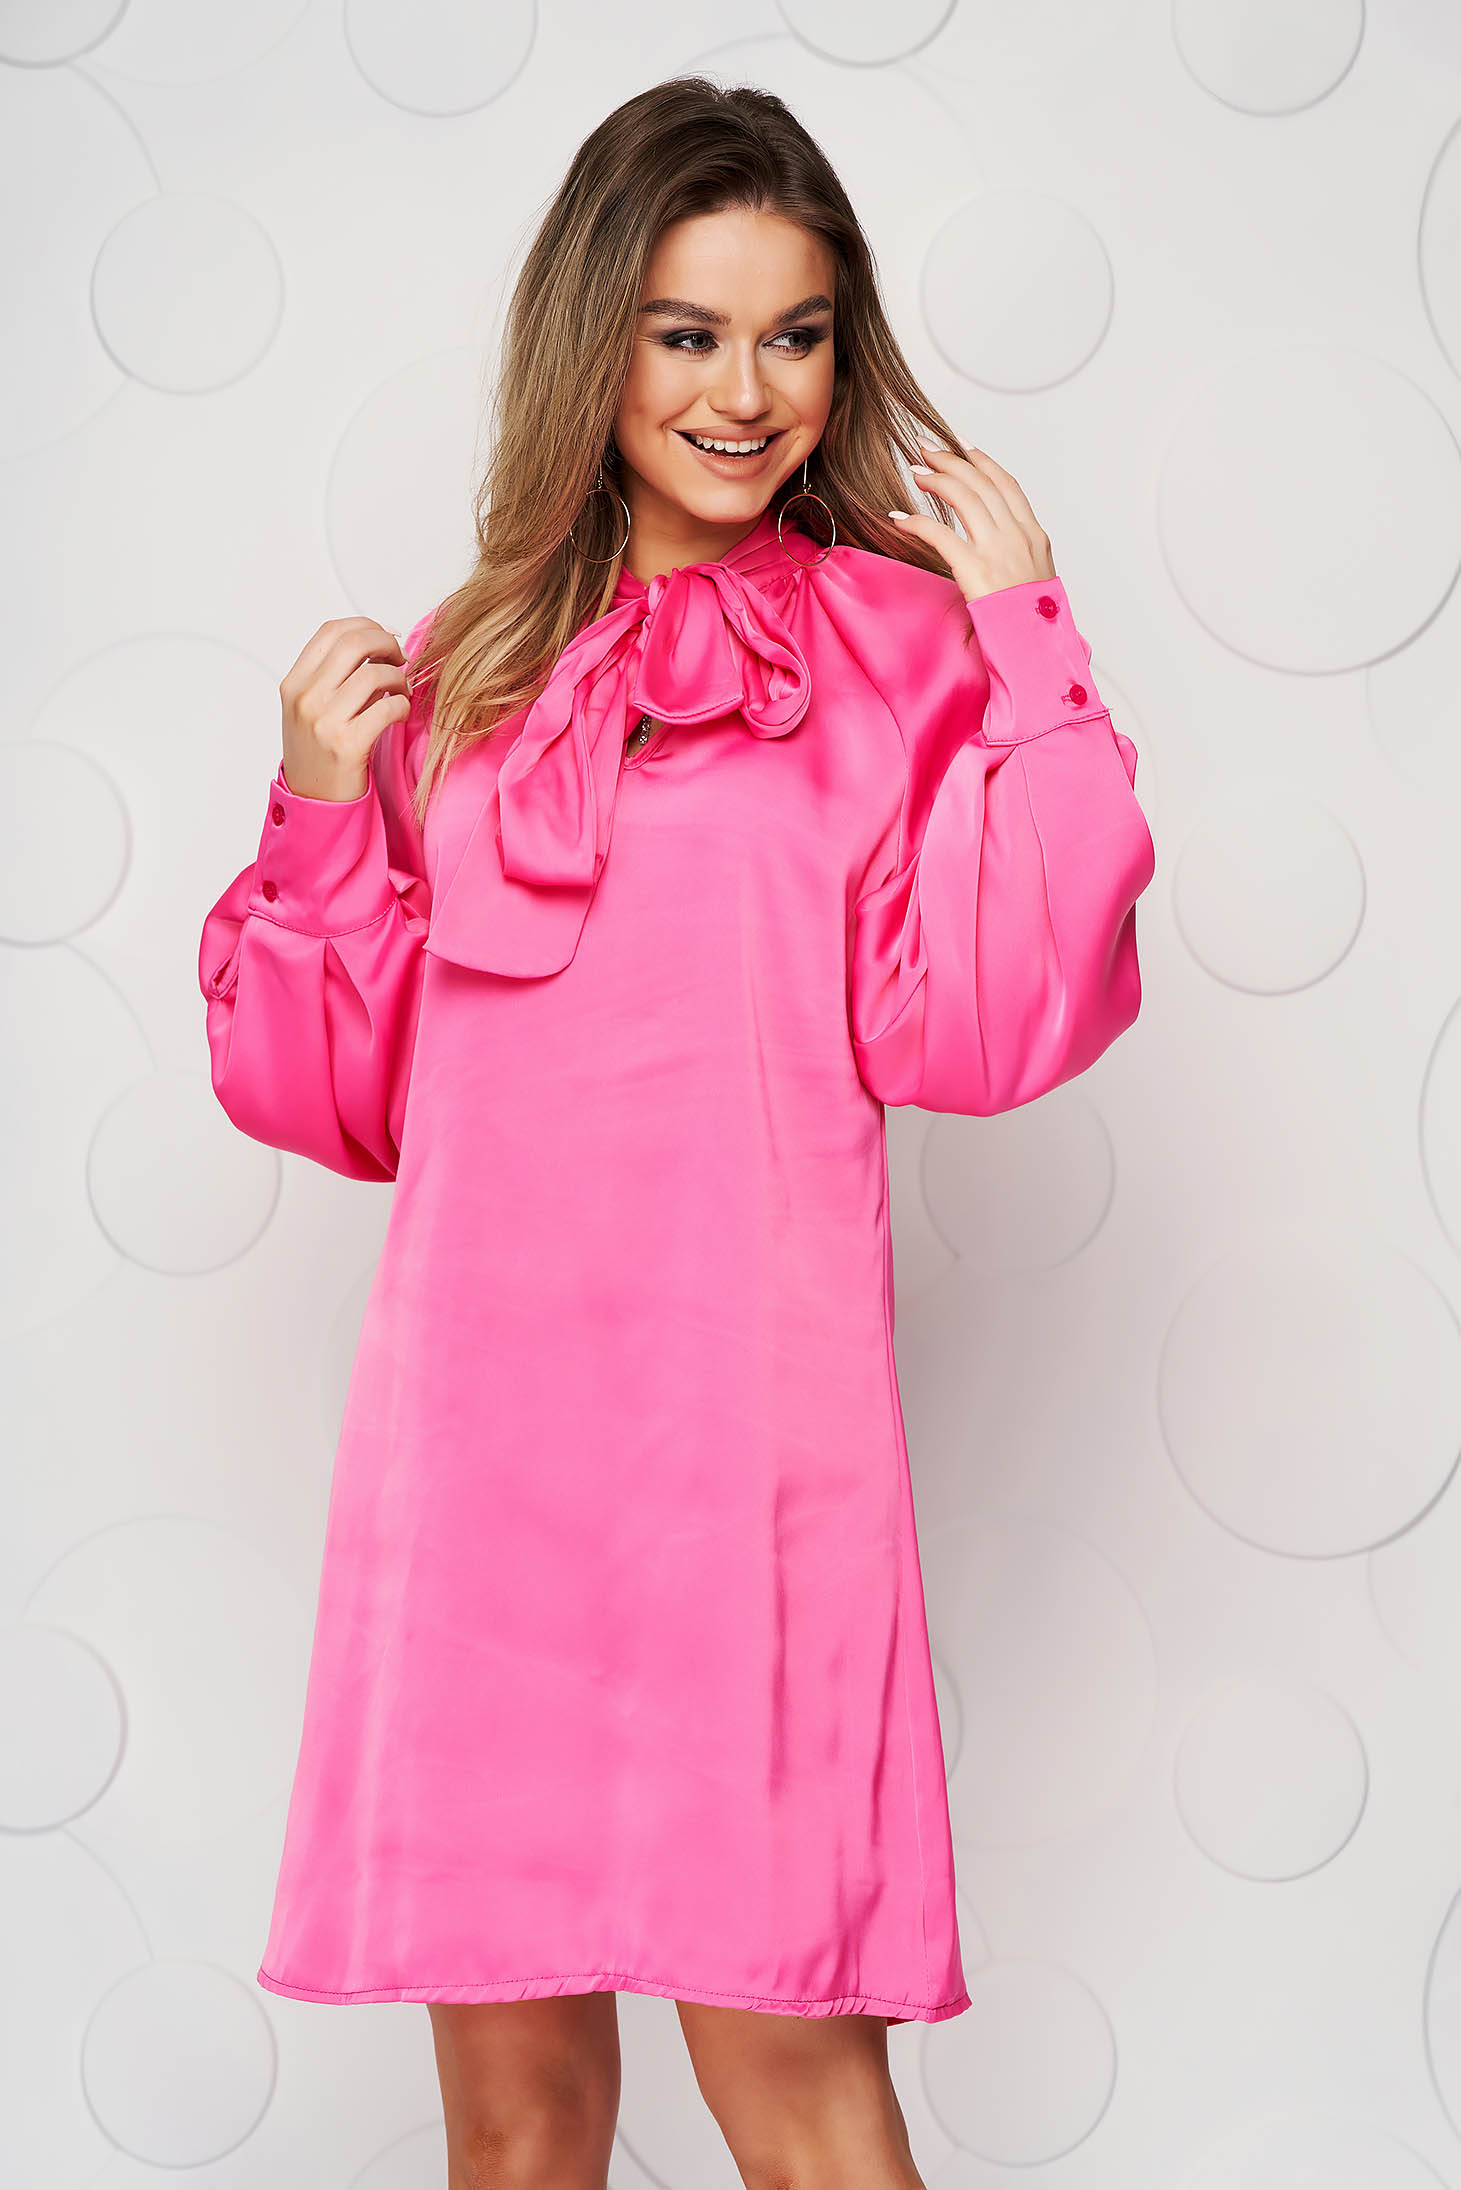 Pink dress from satin with puffed sleeves loose fit bow accessory